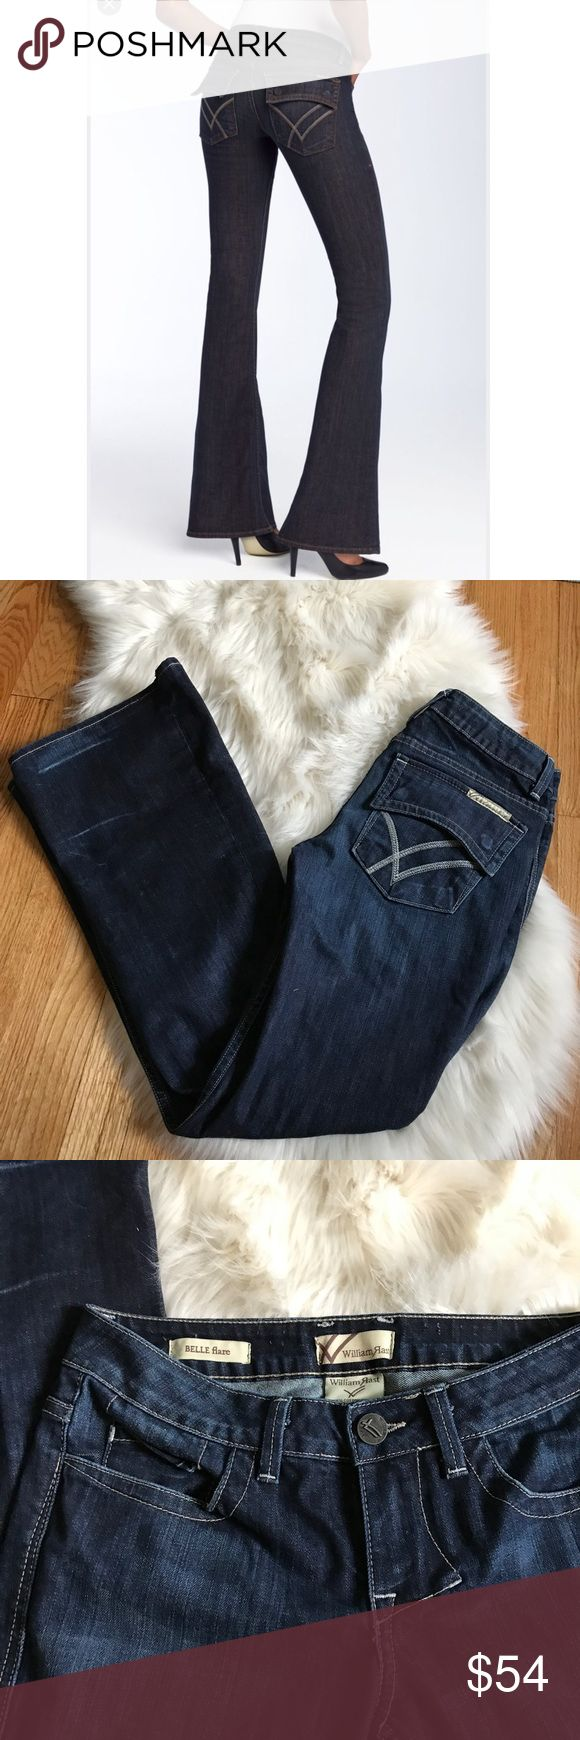 William Rast Belle Flare Jeans William Rast Belle Flare Jeans. Dark wash and great flare. Awesome pocket details. William Rast Jeans Flare & Wide Leg